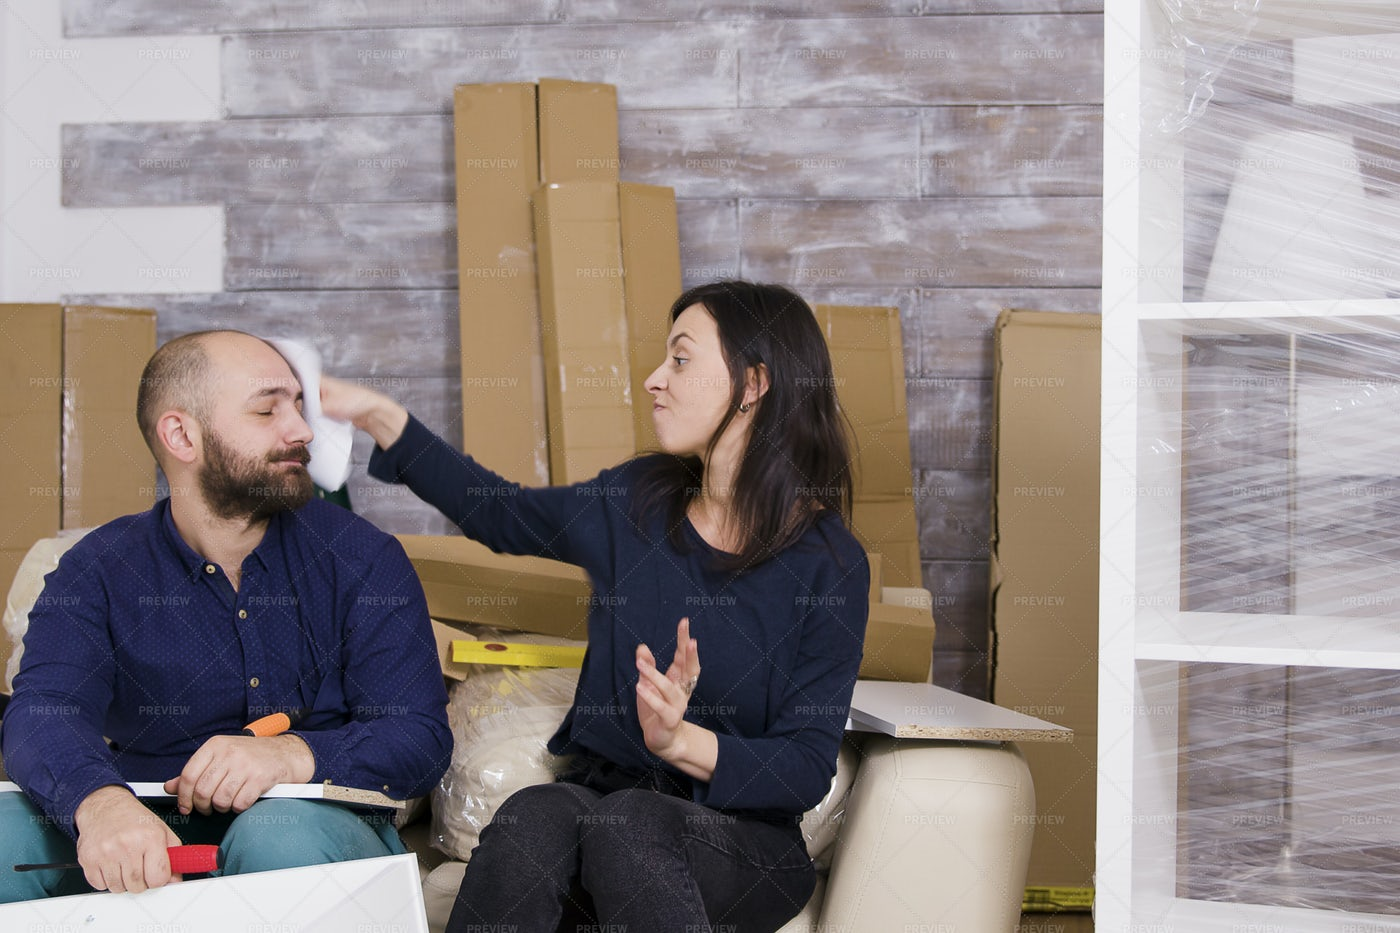 Smacking Partner With Paper: Stock Photos